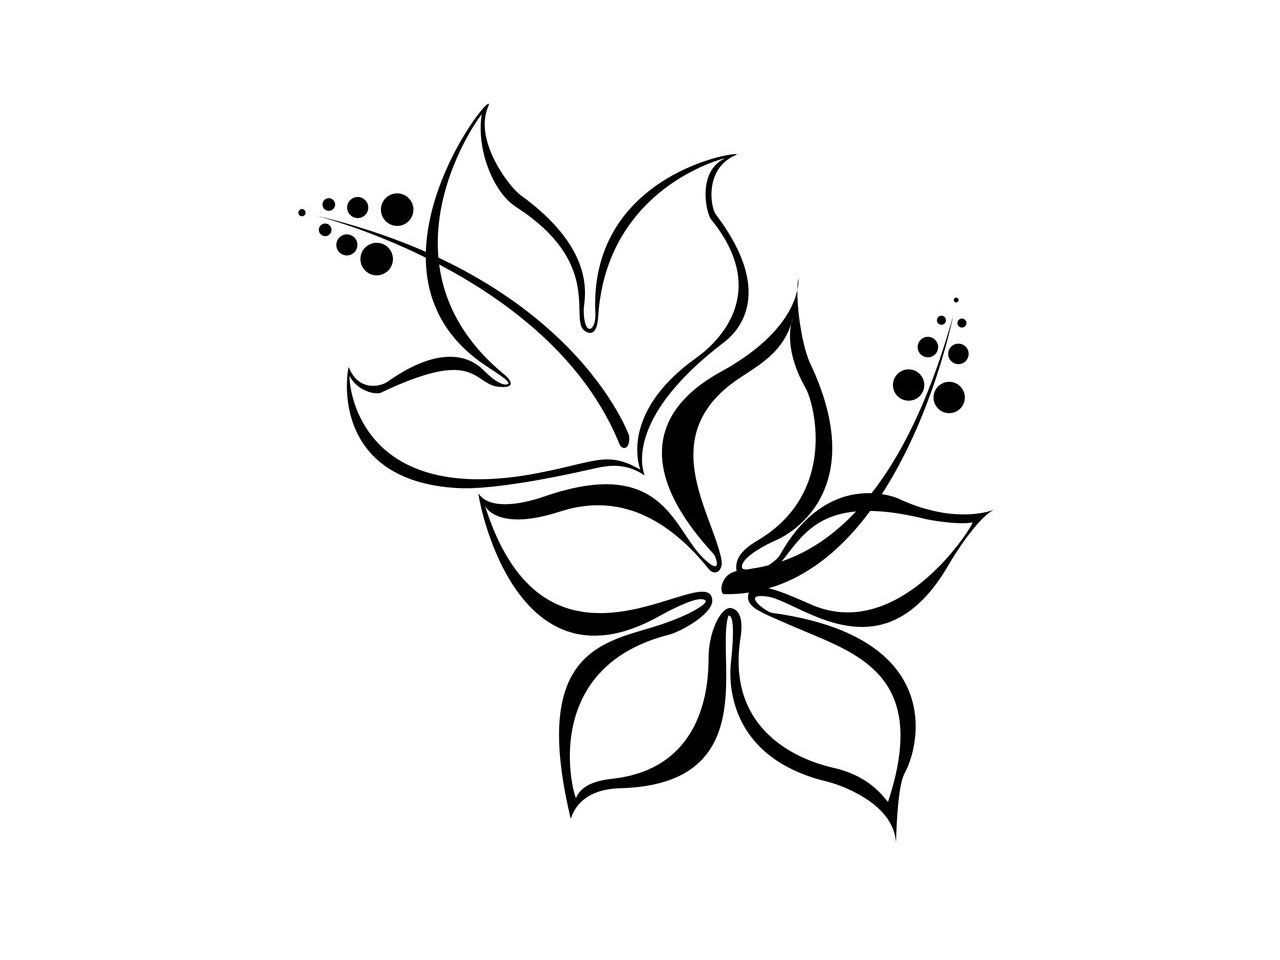 Flower Drawing Tumblr Easy At Getdrawings Com Free For Personal